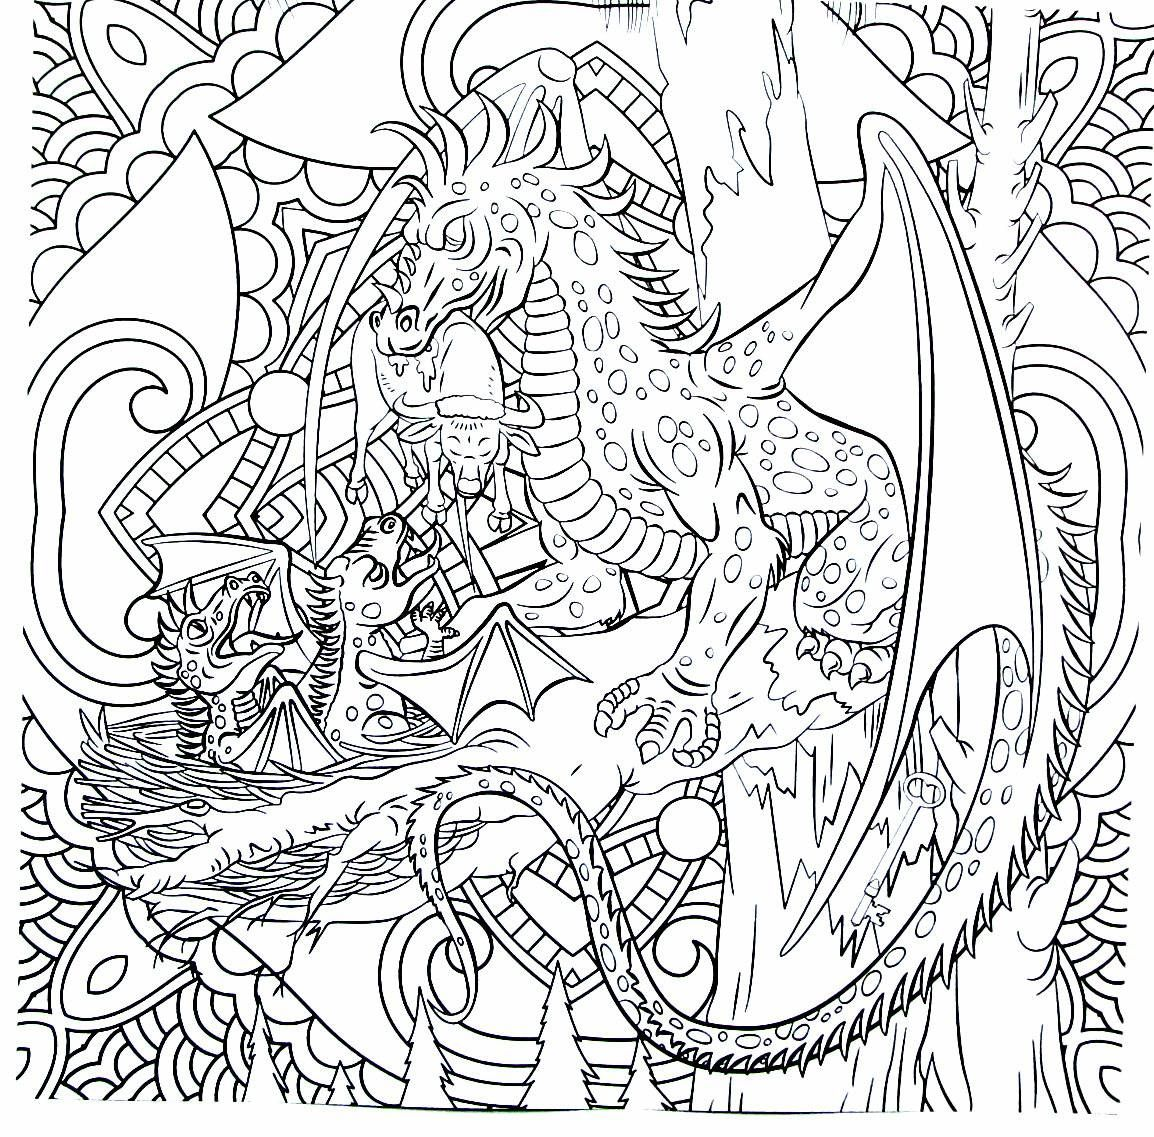 Dragon killing ox detailed coloring book page for adults | Fantasy ...